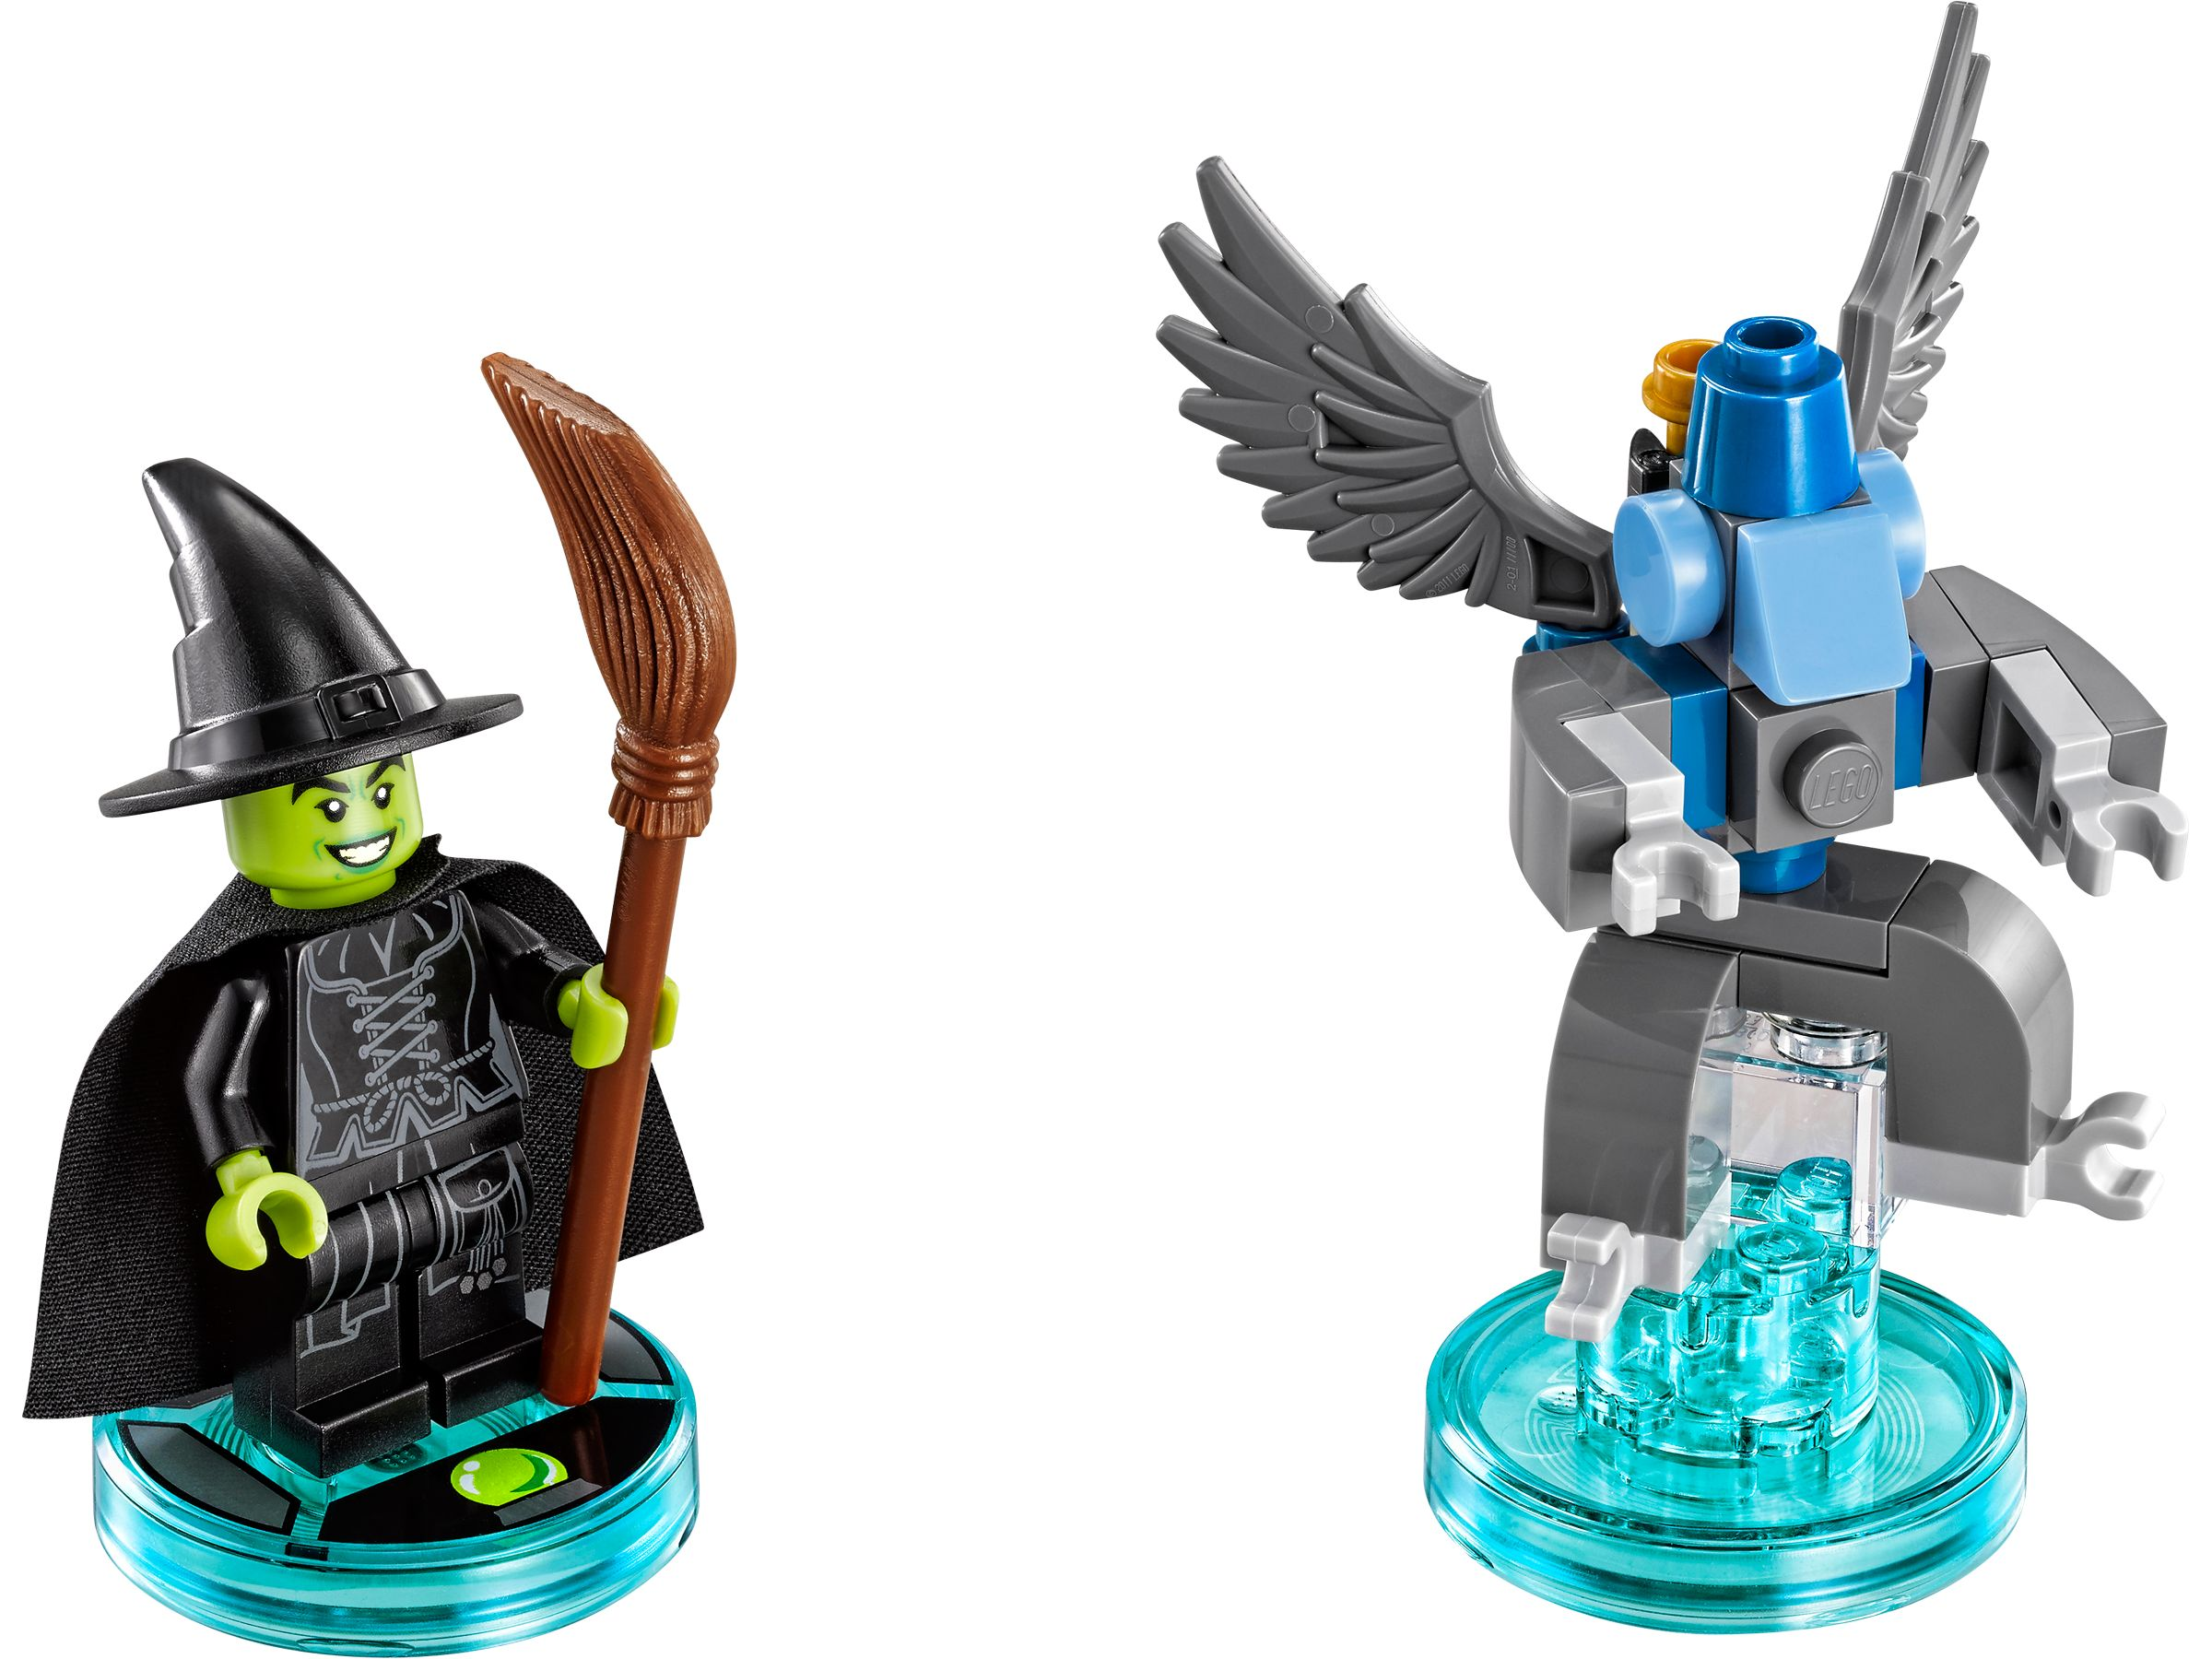 LEGO Dimensions 71221 Fun Pack Böse Hexe LEGO_71221.jpg